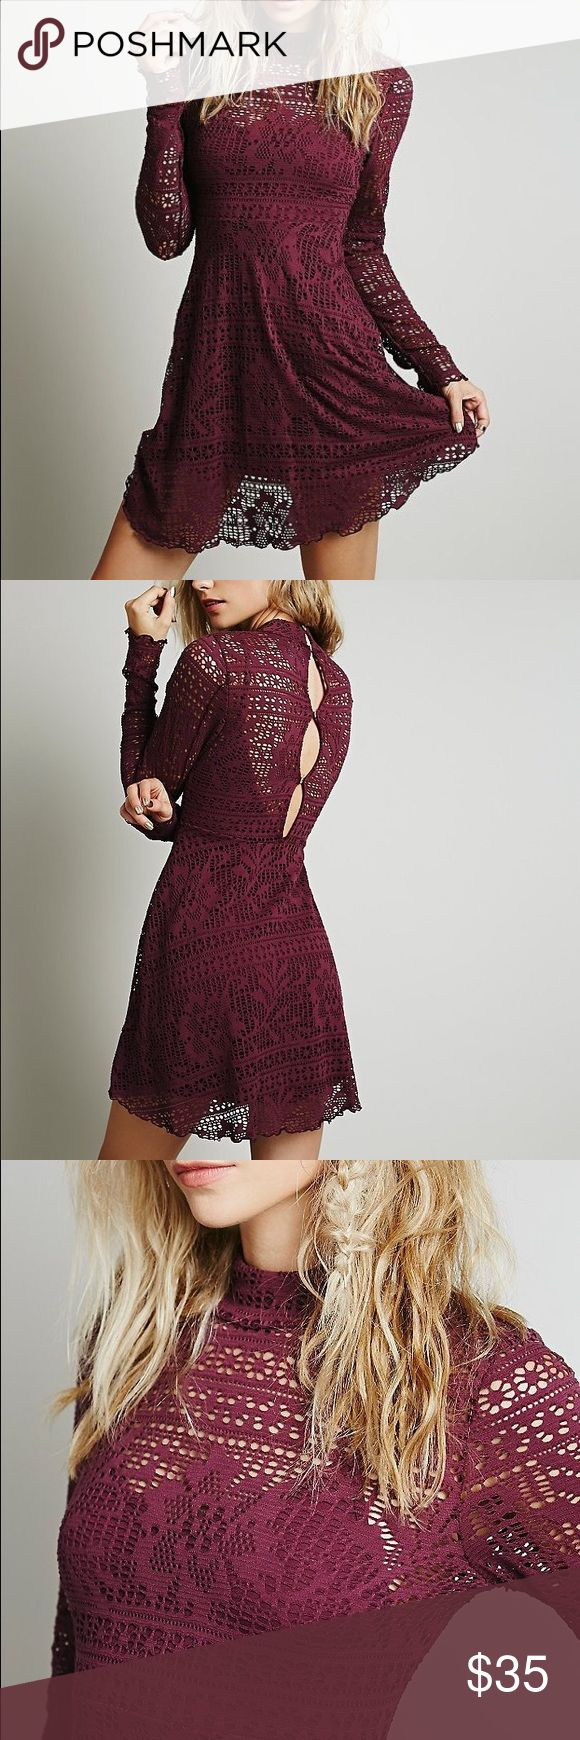 Free People dinner date dress Free People dinner date dress in deep purple. 2 piece set can also be worn separately Free People Dresses Mini